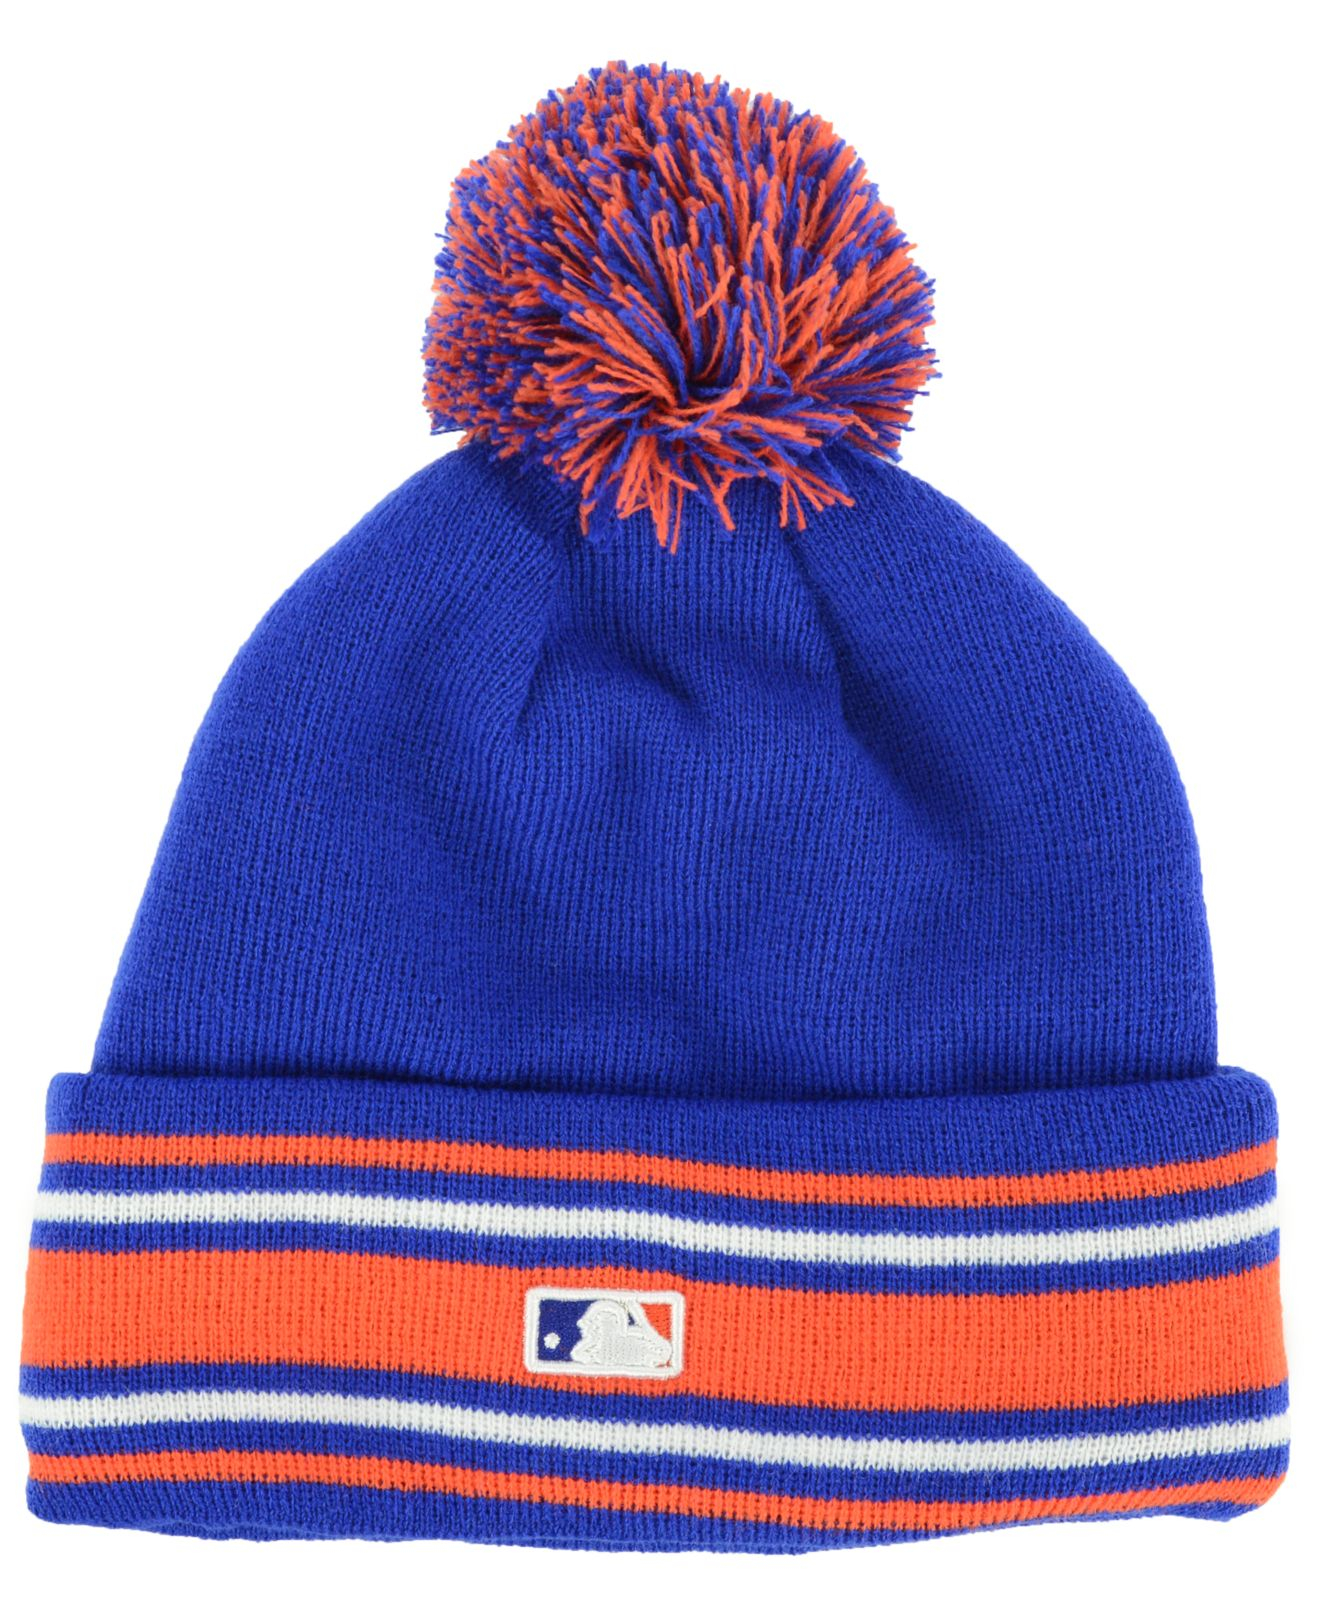 ... hat b747b coupon code for lyst ktz new york mets mlb ac knit in blue  for men e4927 ... 6697c14d23f